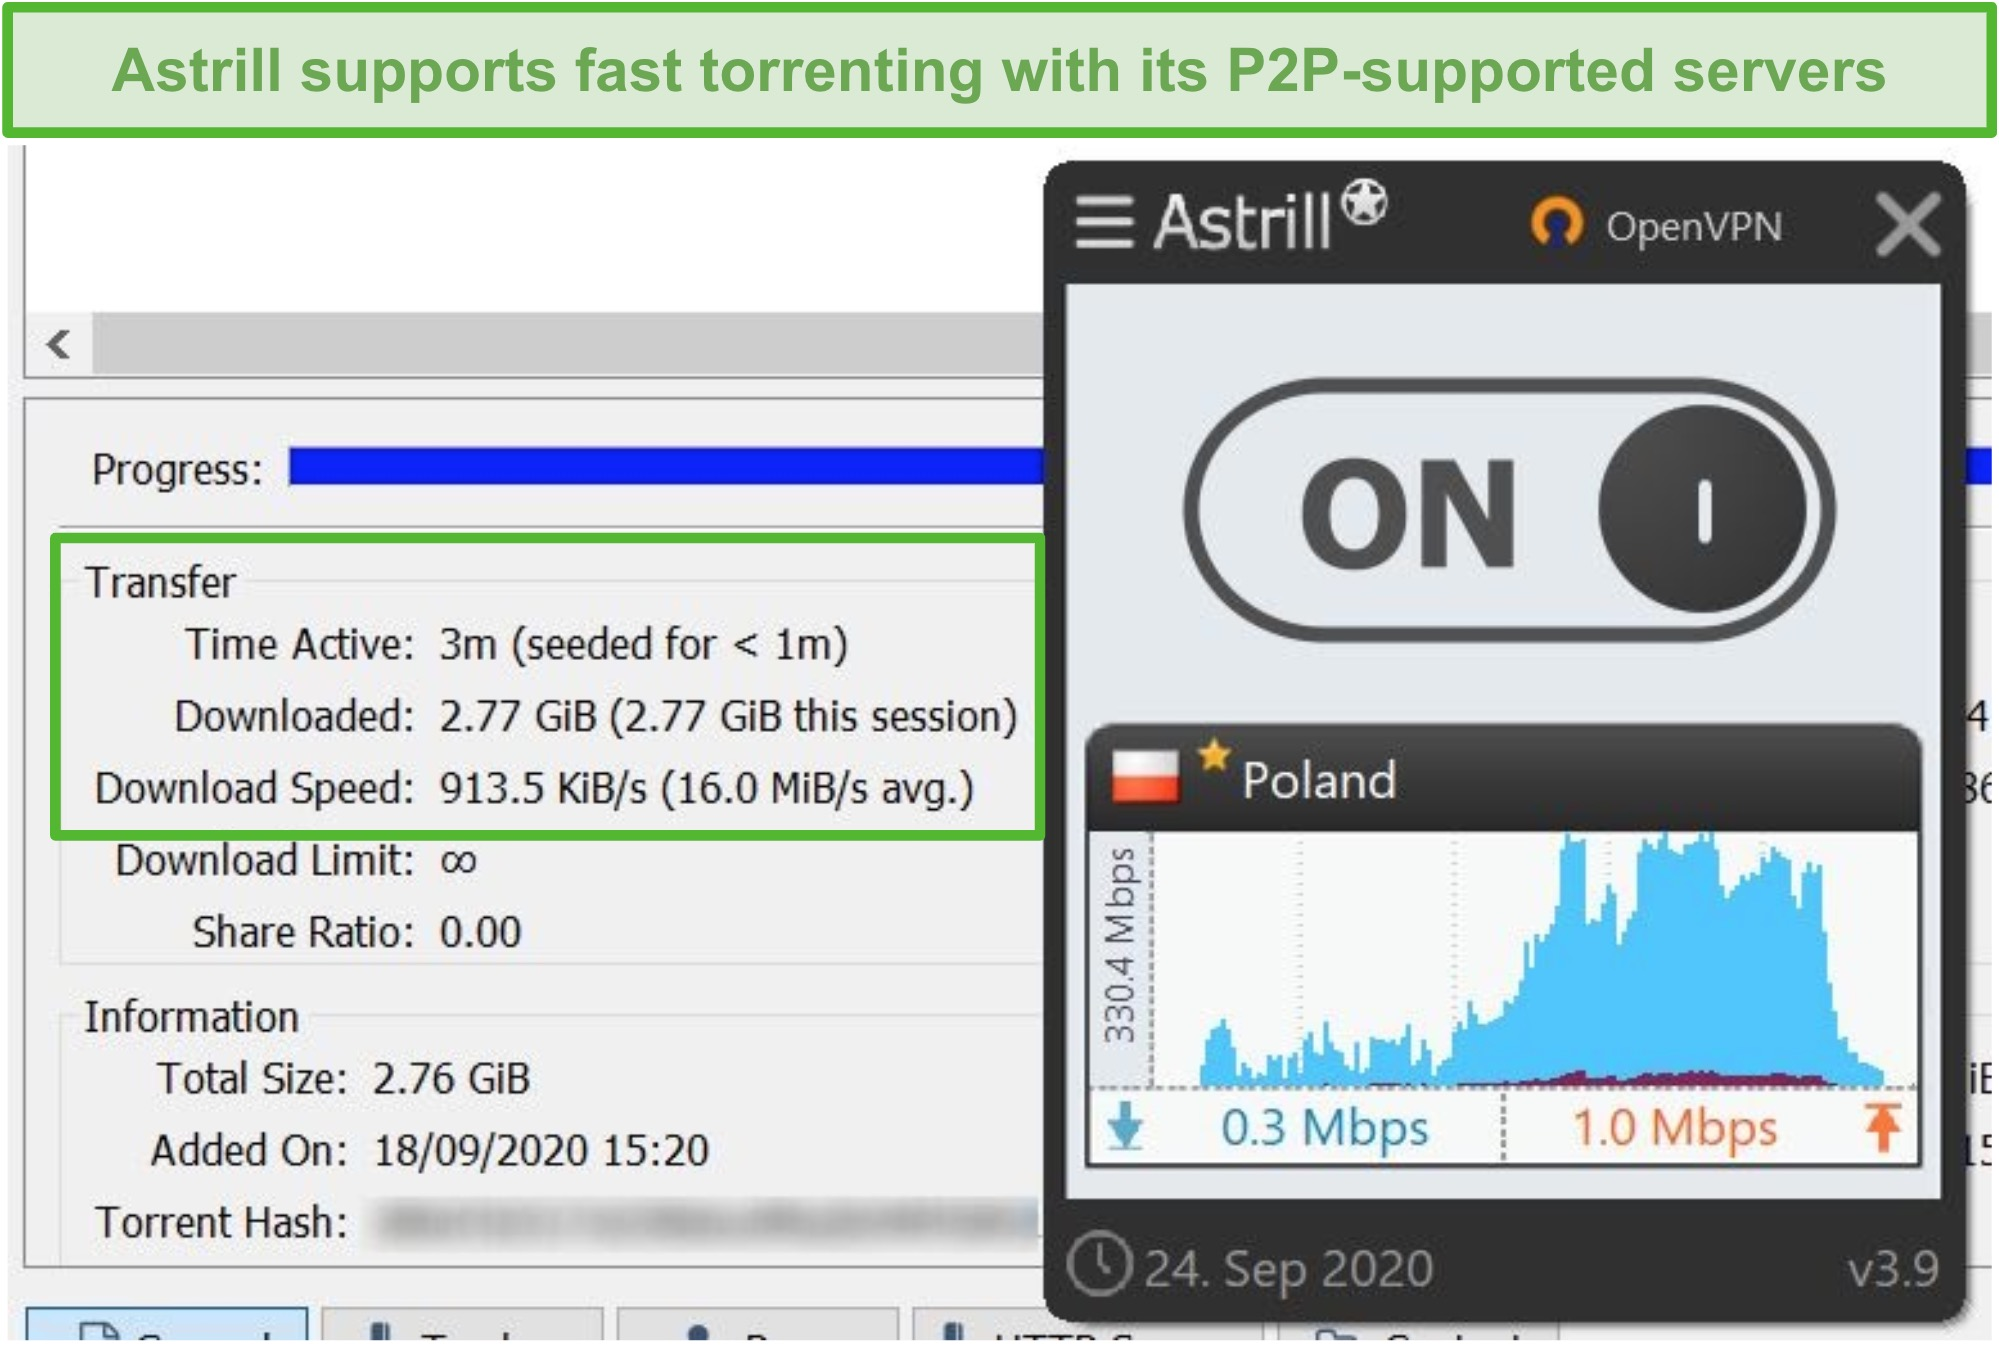 Screenshot of Astrill torrenting a file through its Polish P2P-supporting server.